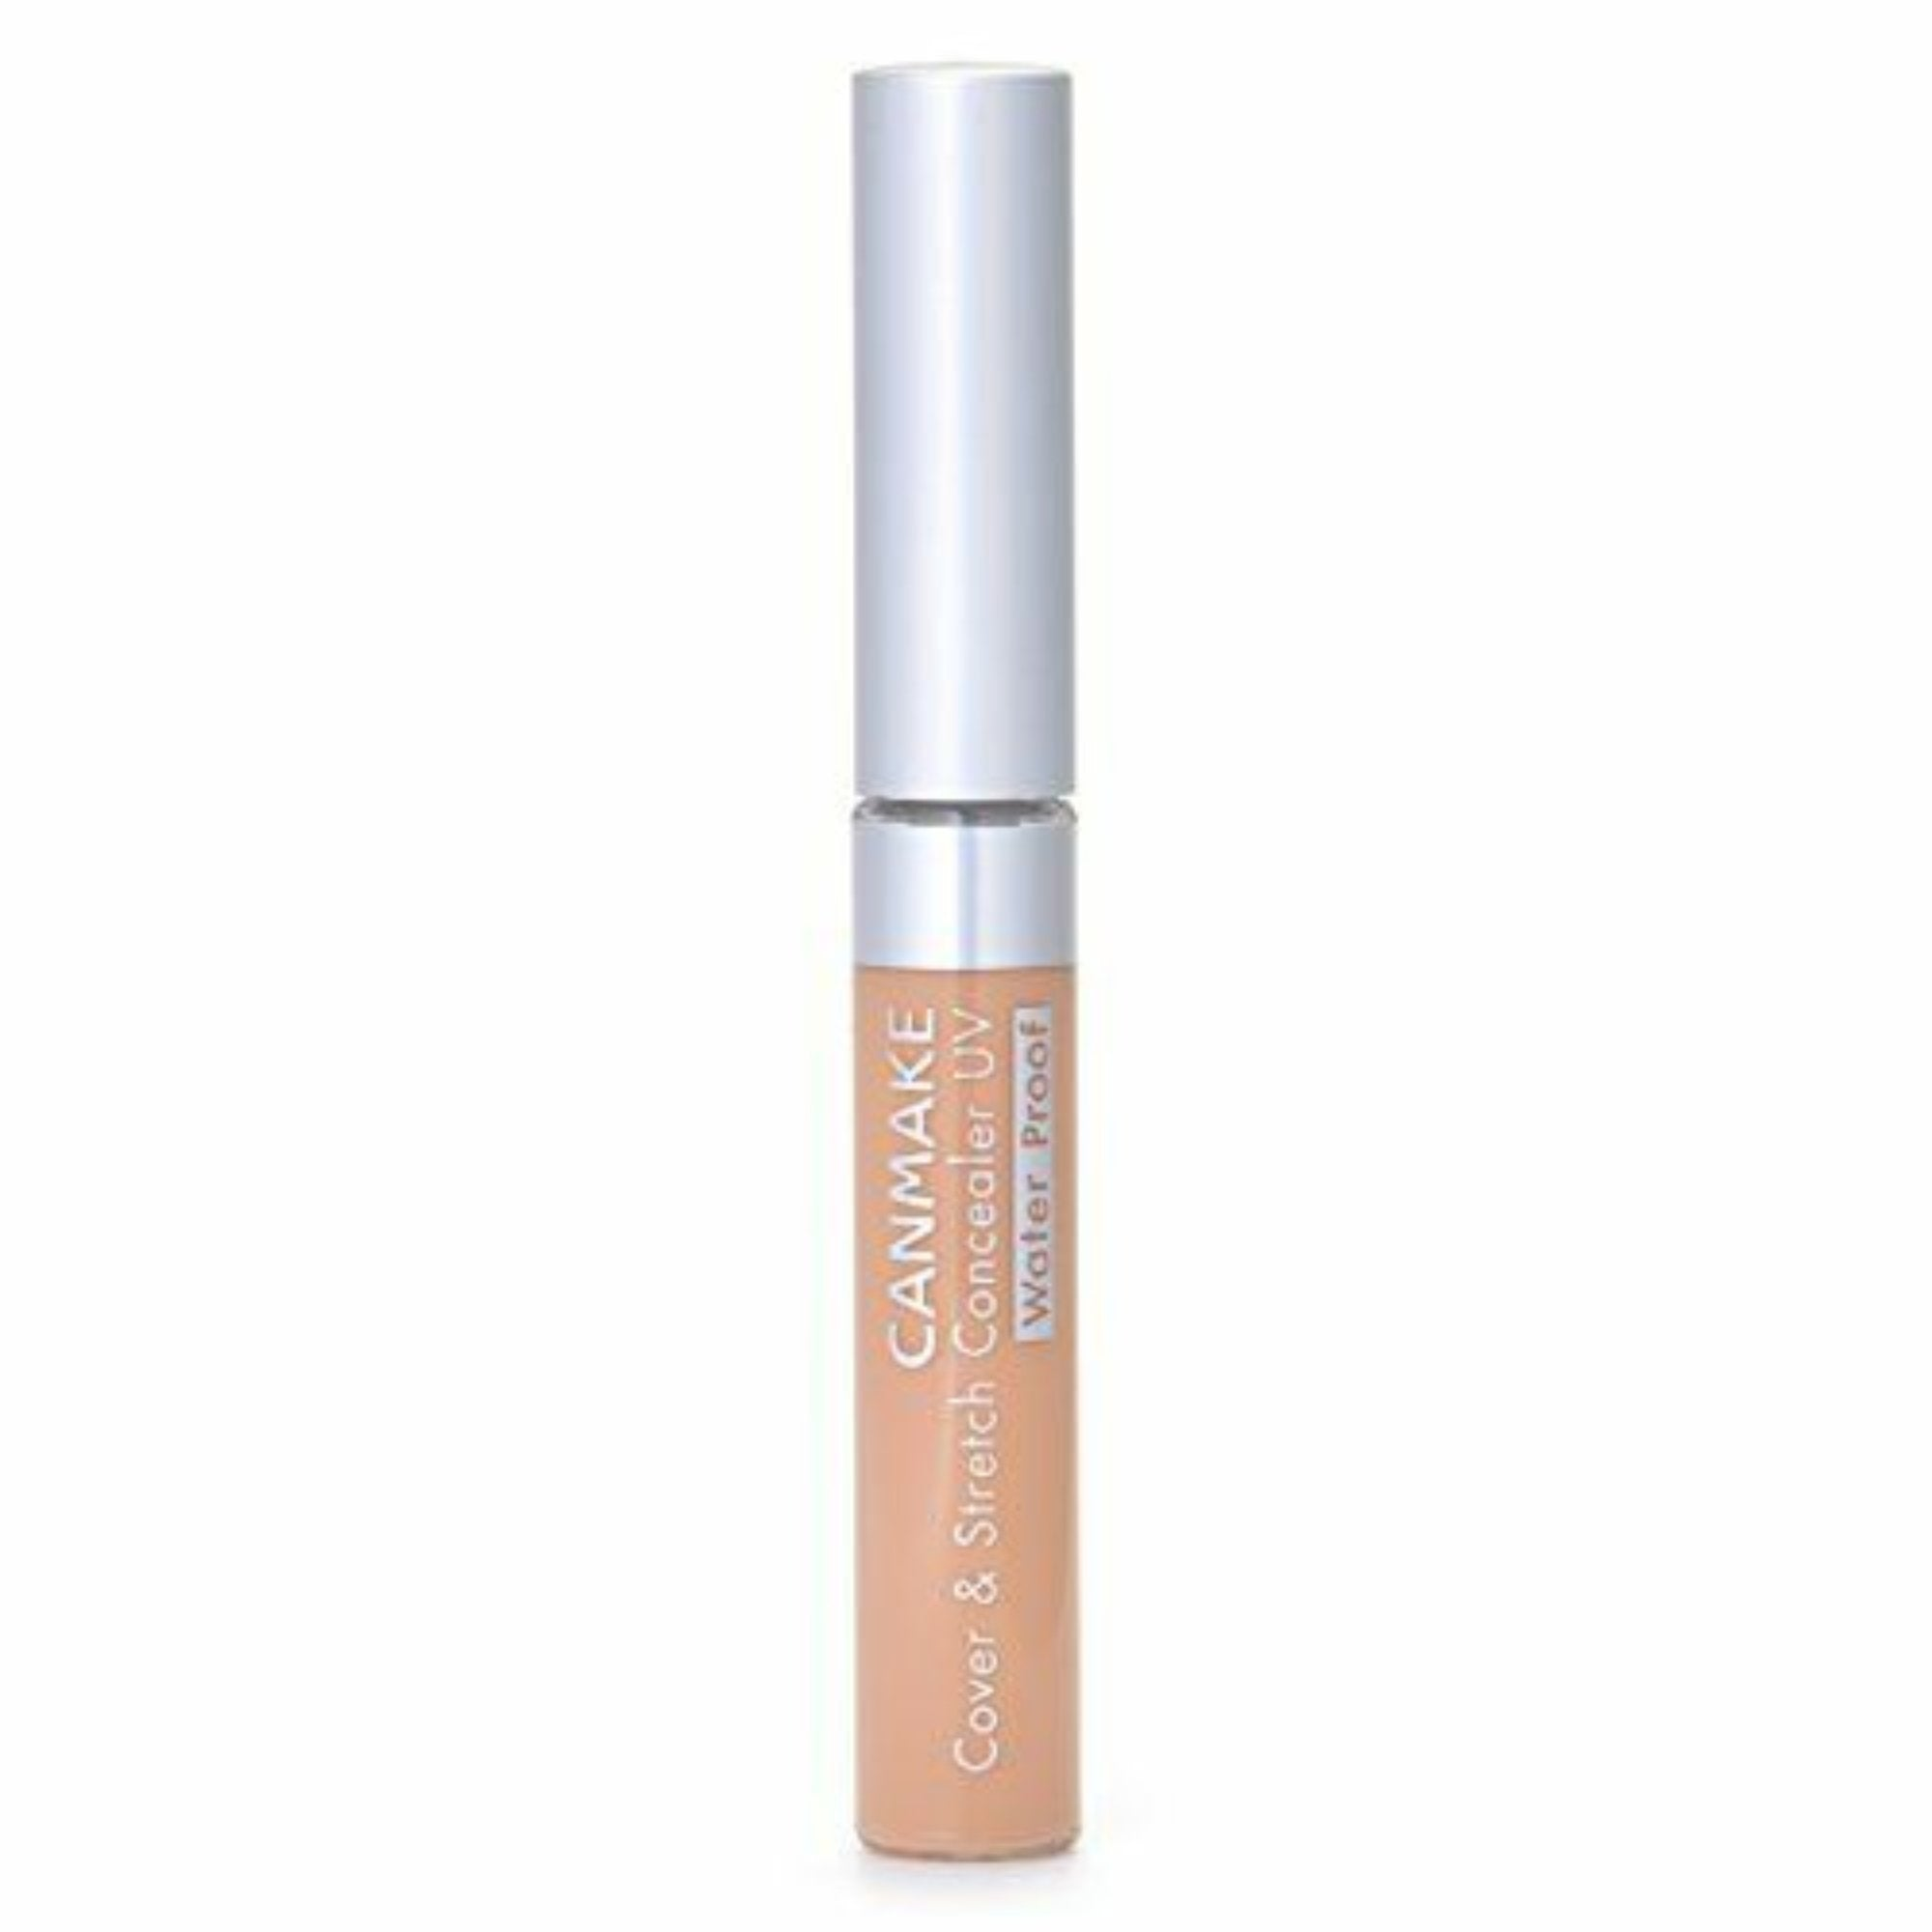 Cover & Stretch Concealer